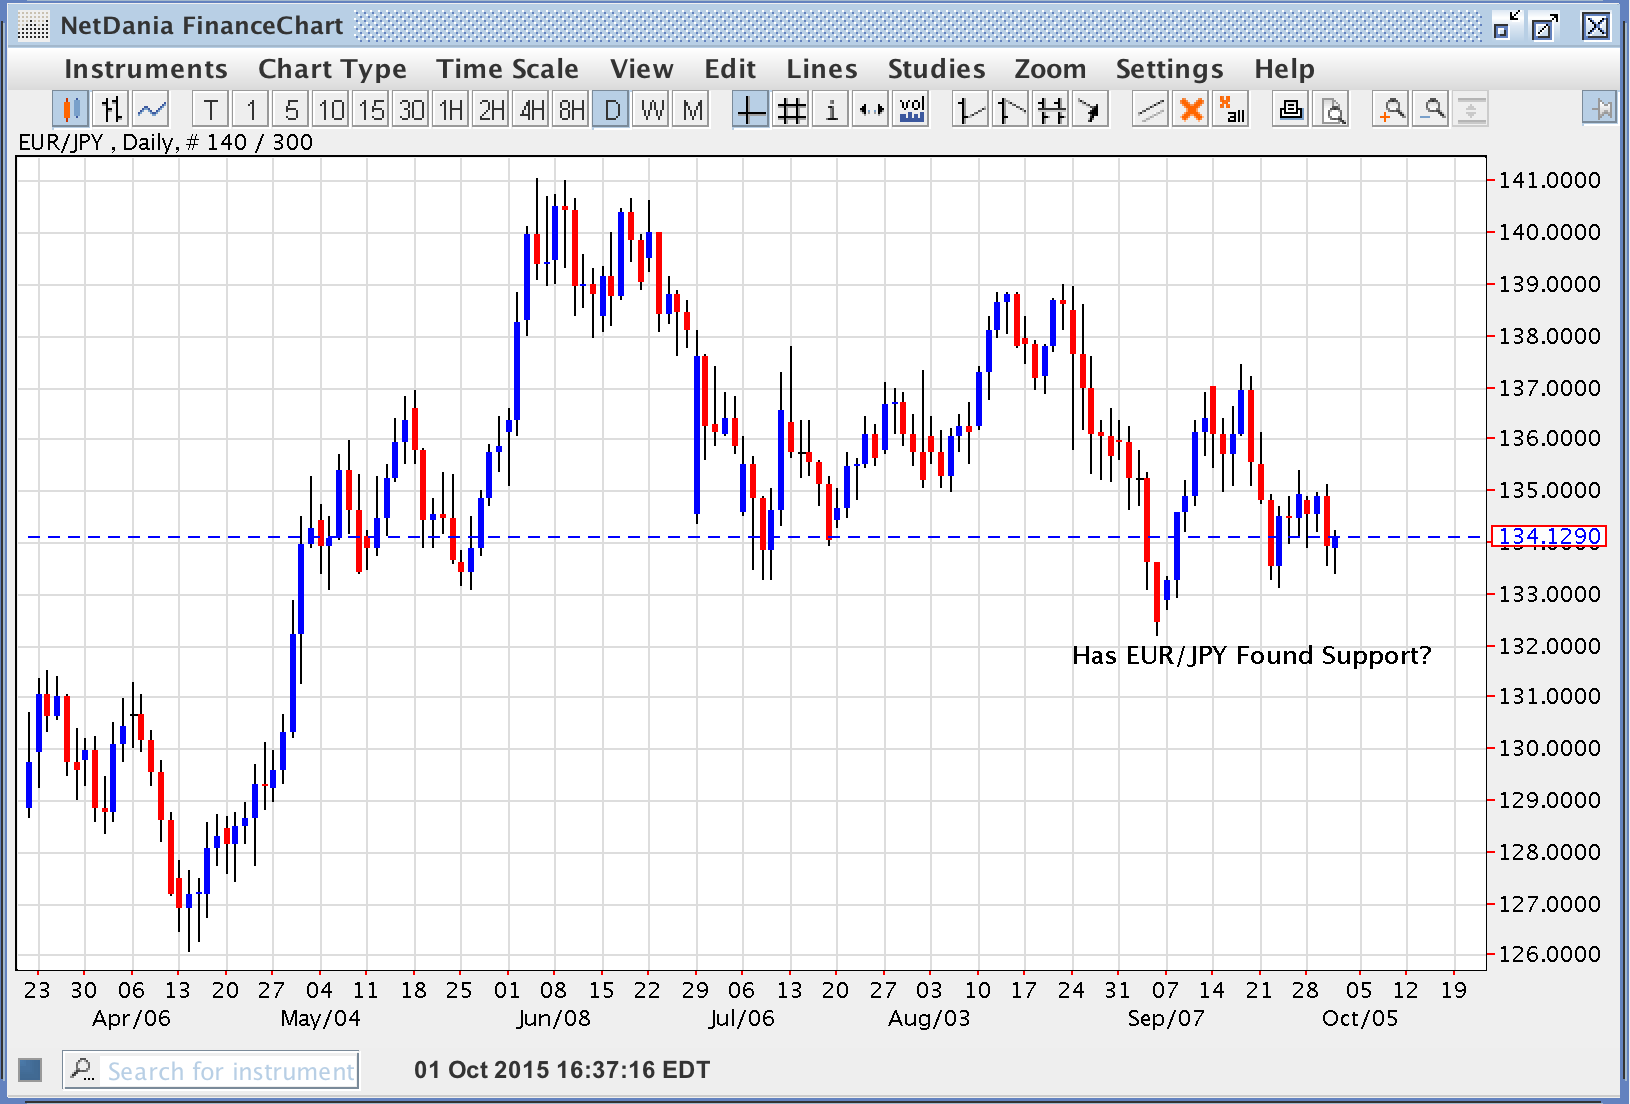 Has EUR/JPY Found Support?